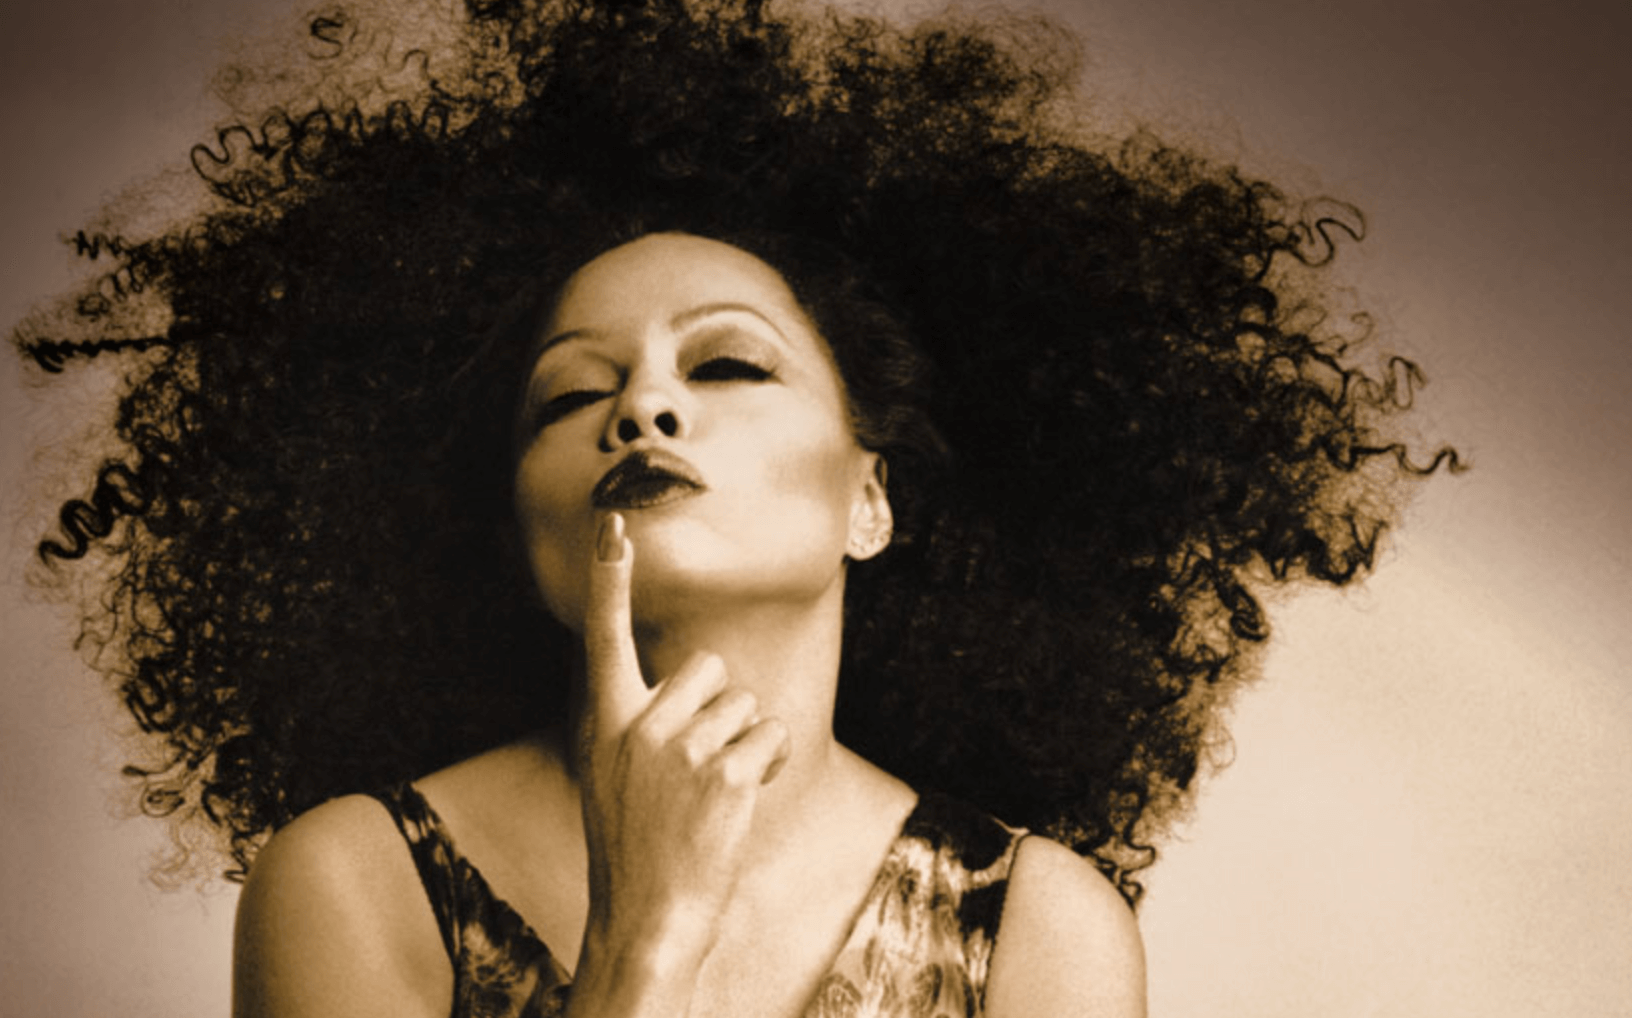 Diana Ross Live in Las Vegas February 2018